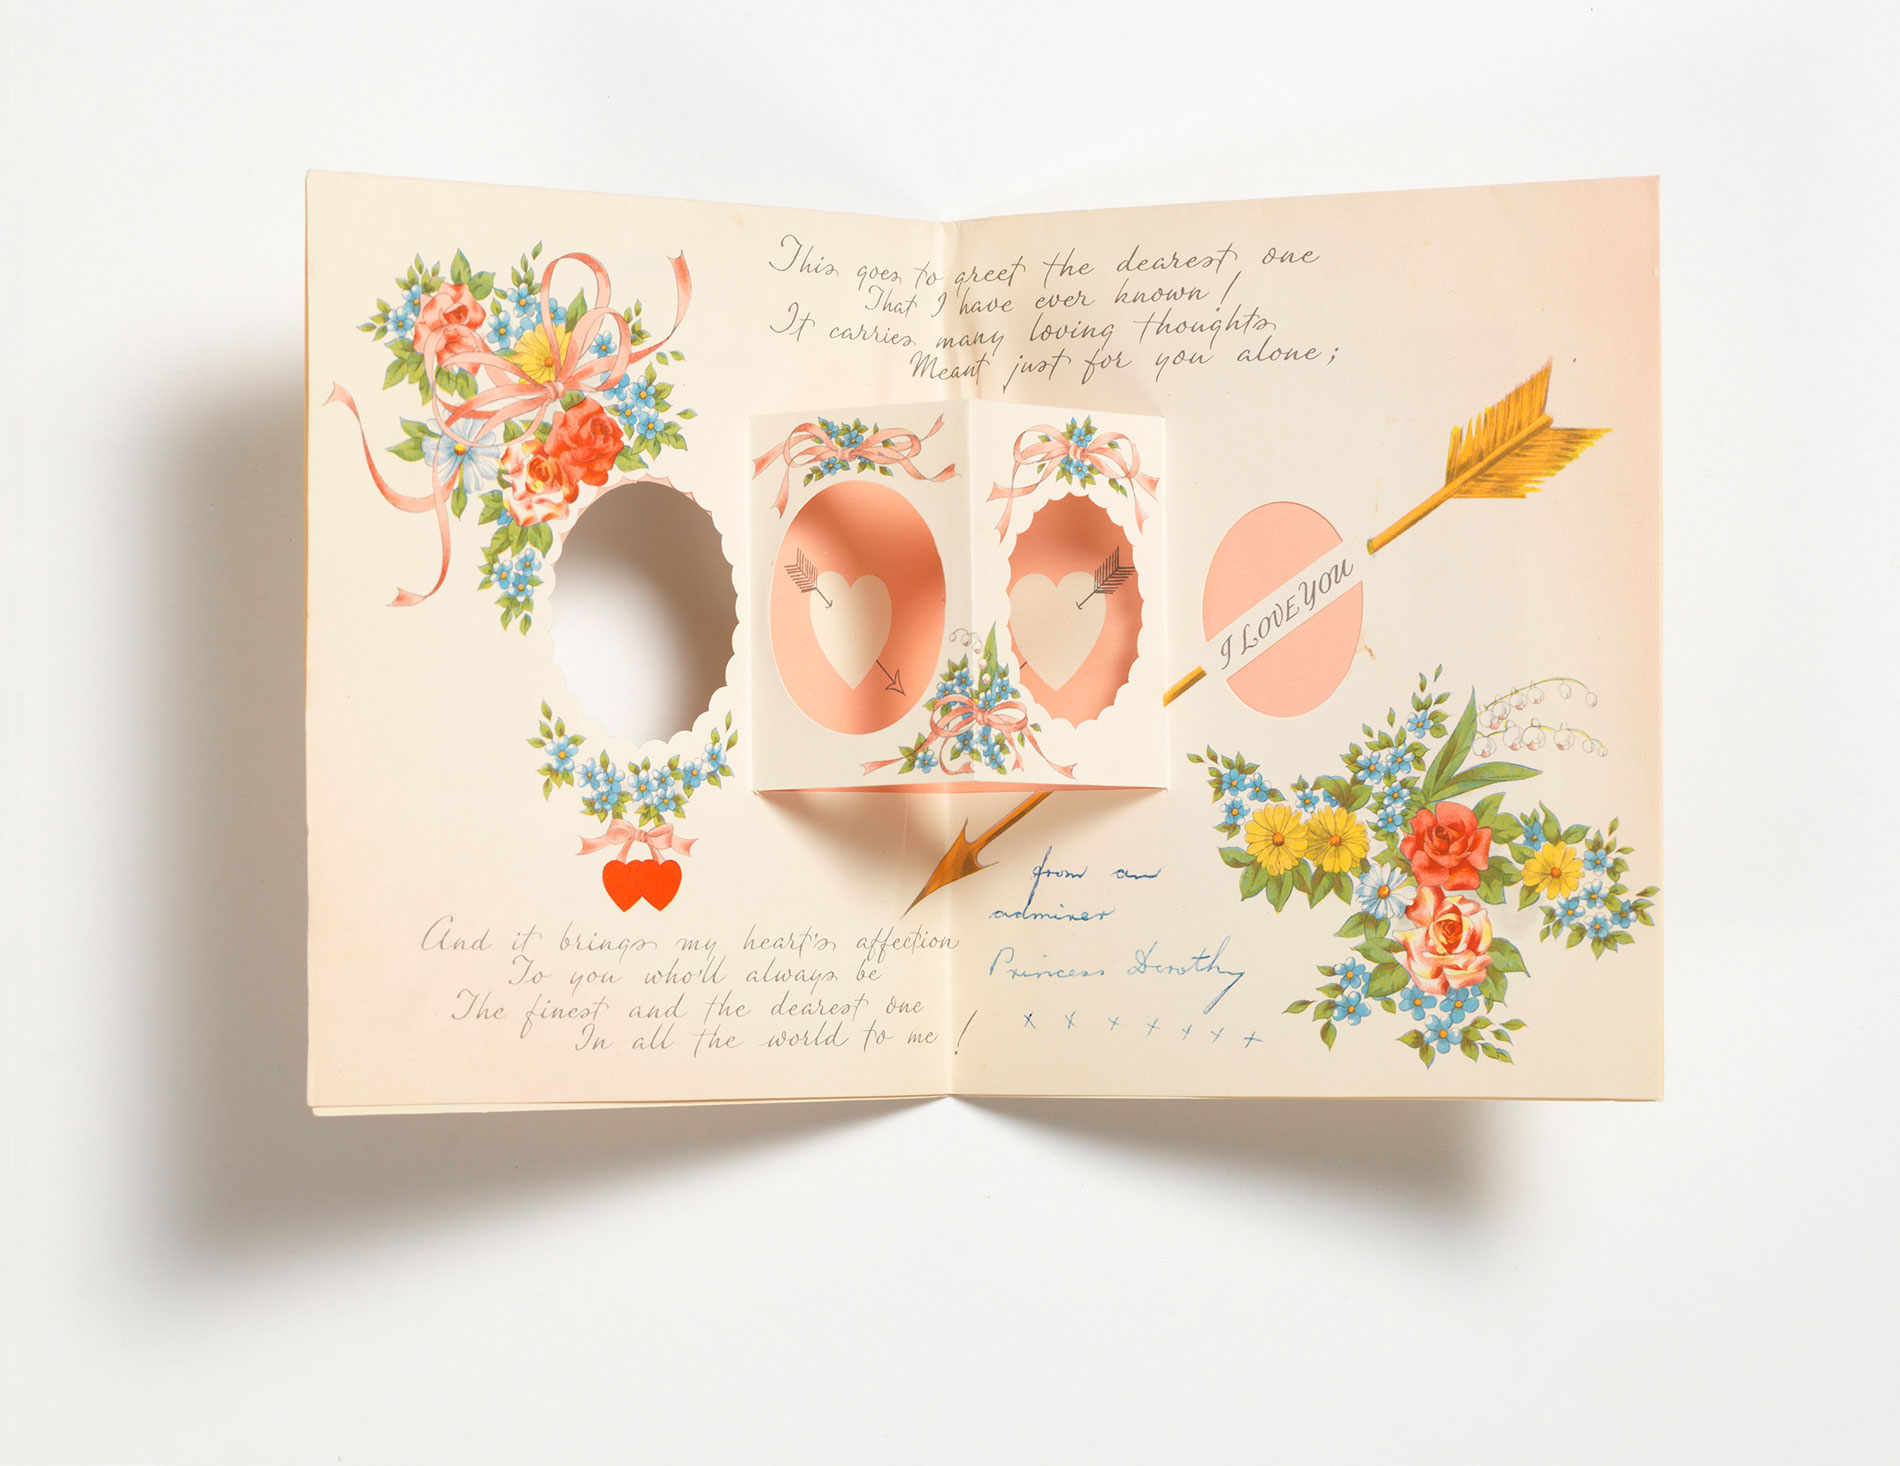 The inside of a Valentine's Day greeting card, with a pop-up feature, a printed romantic message and flower graphics.